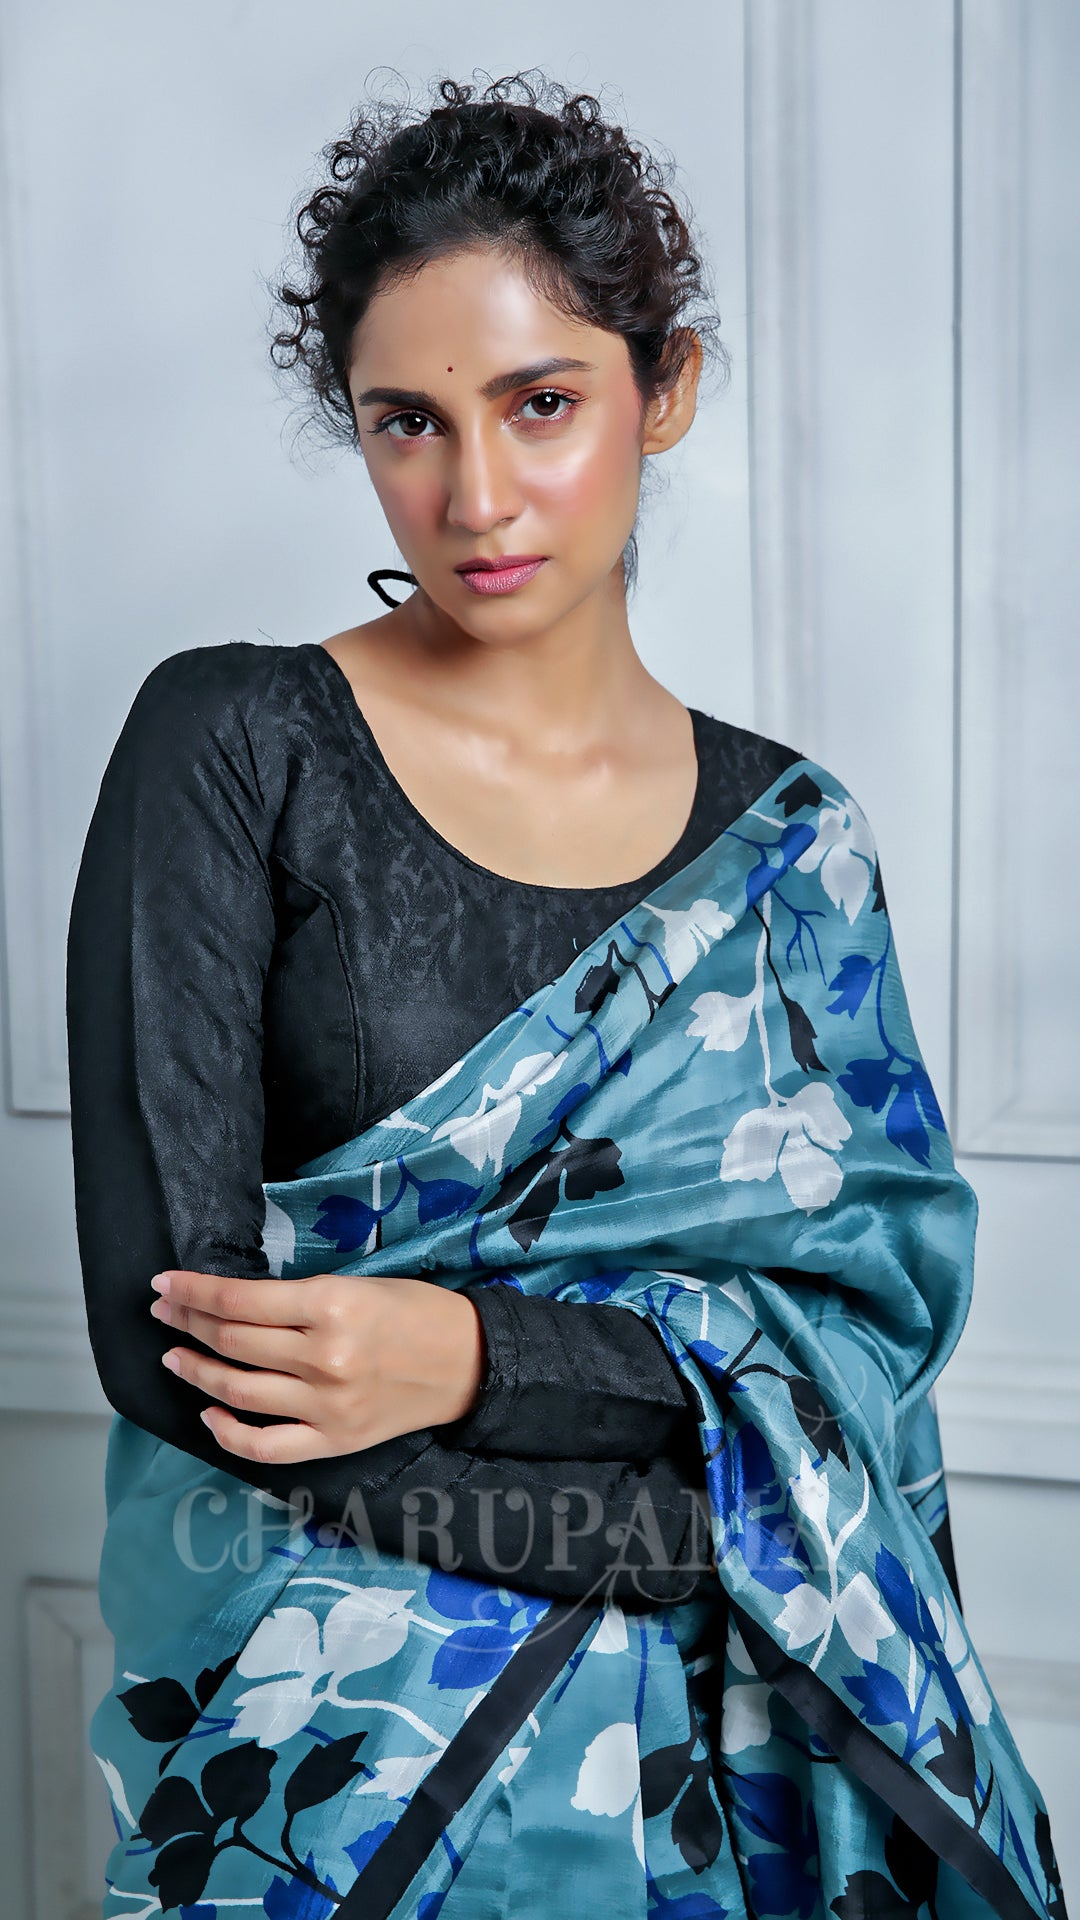 Buy Steel Grey And White Floral Printed Pure Murshidabad Silk Saree - Charupama.com